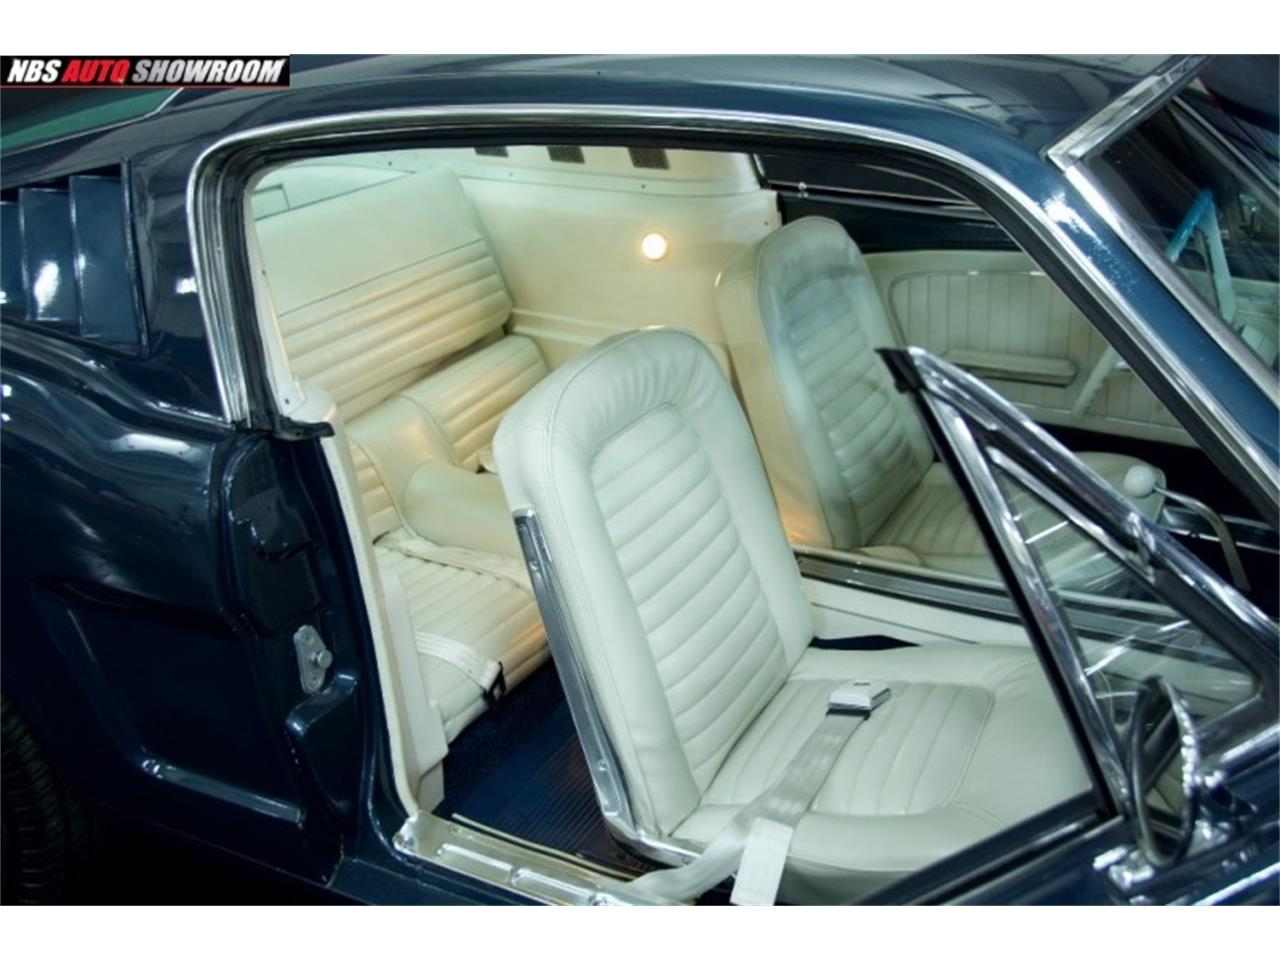 Large Picture of '65 Mustang - $37,074.00 Offered by NBS Auto Showroom - PHR5